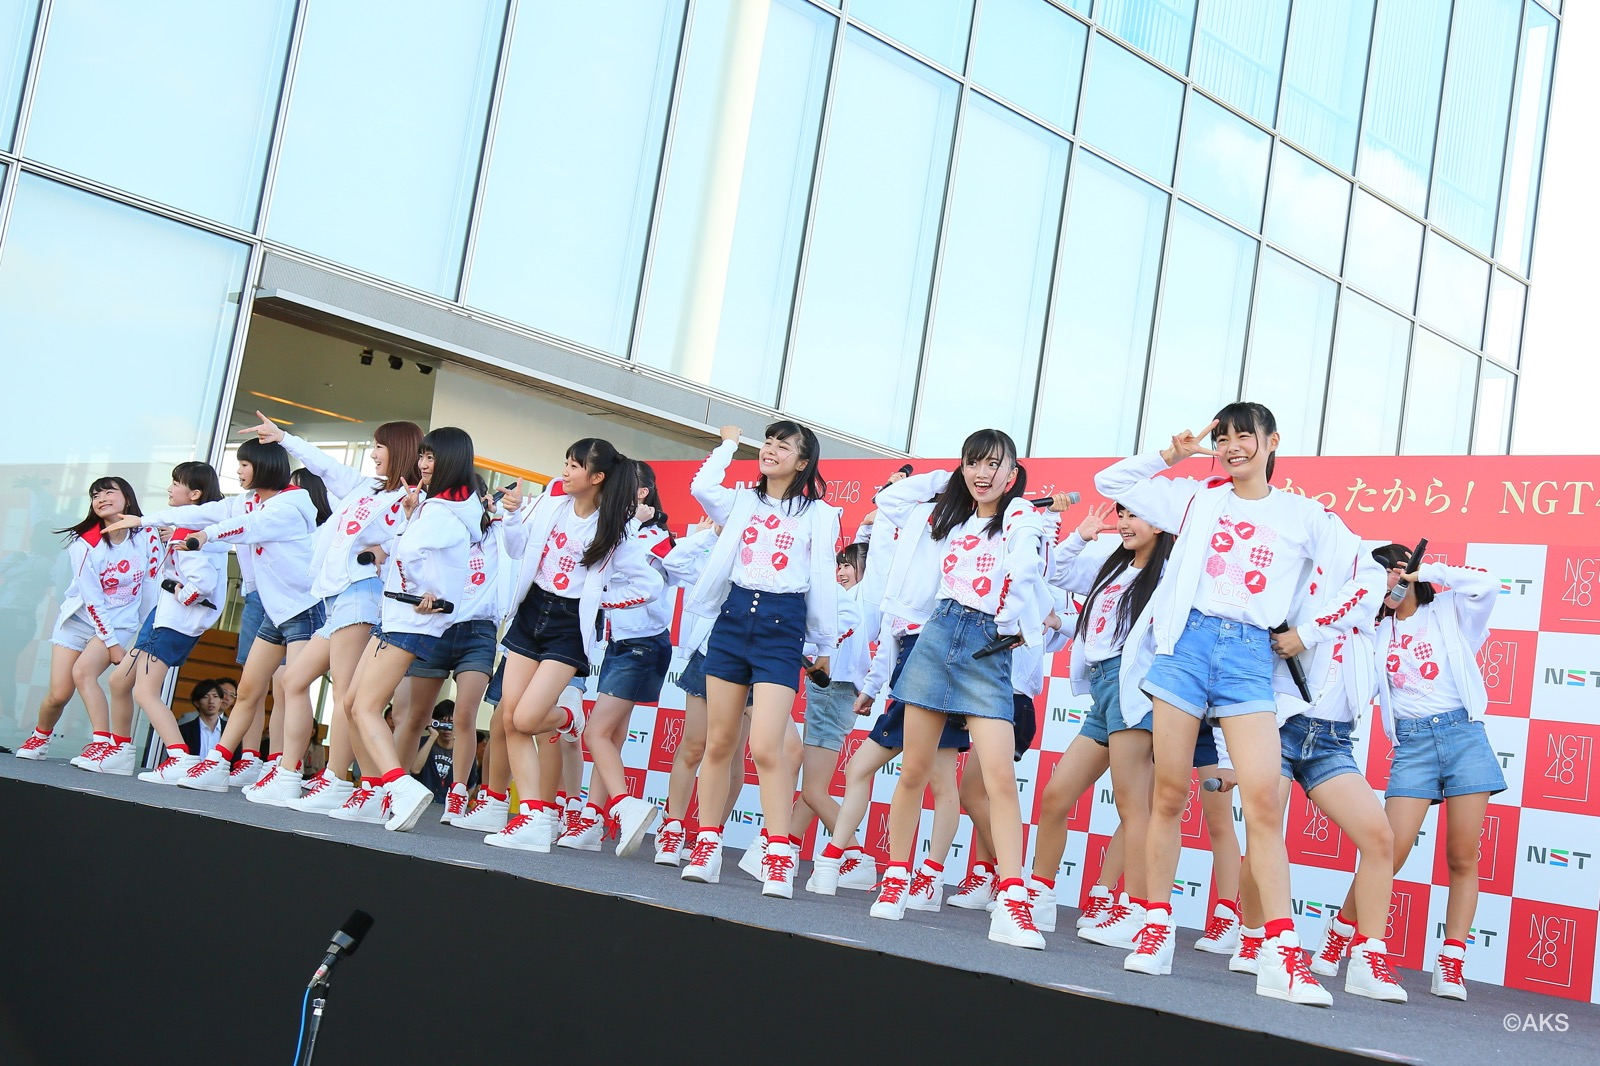 NGT48 2nd costume